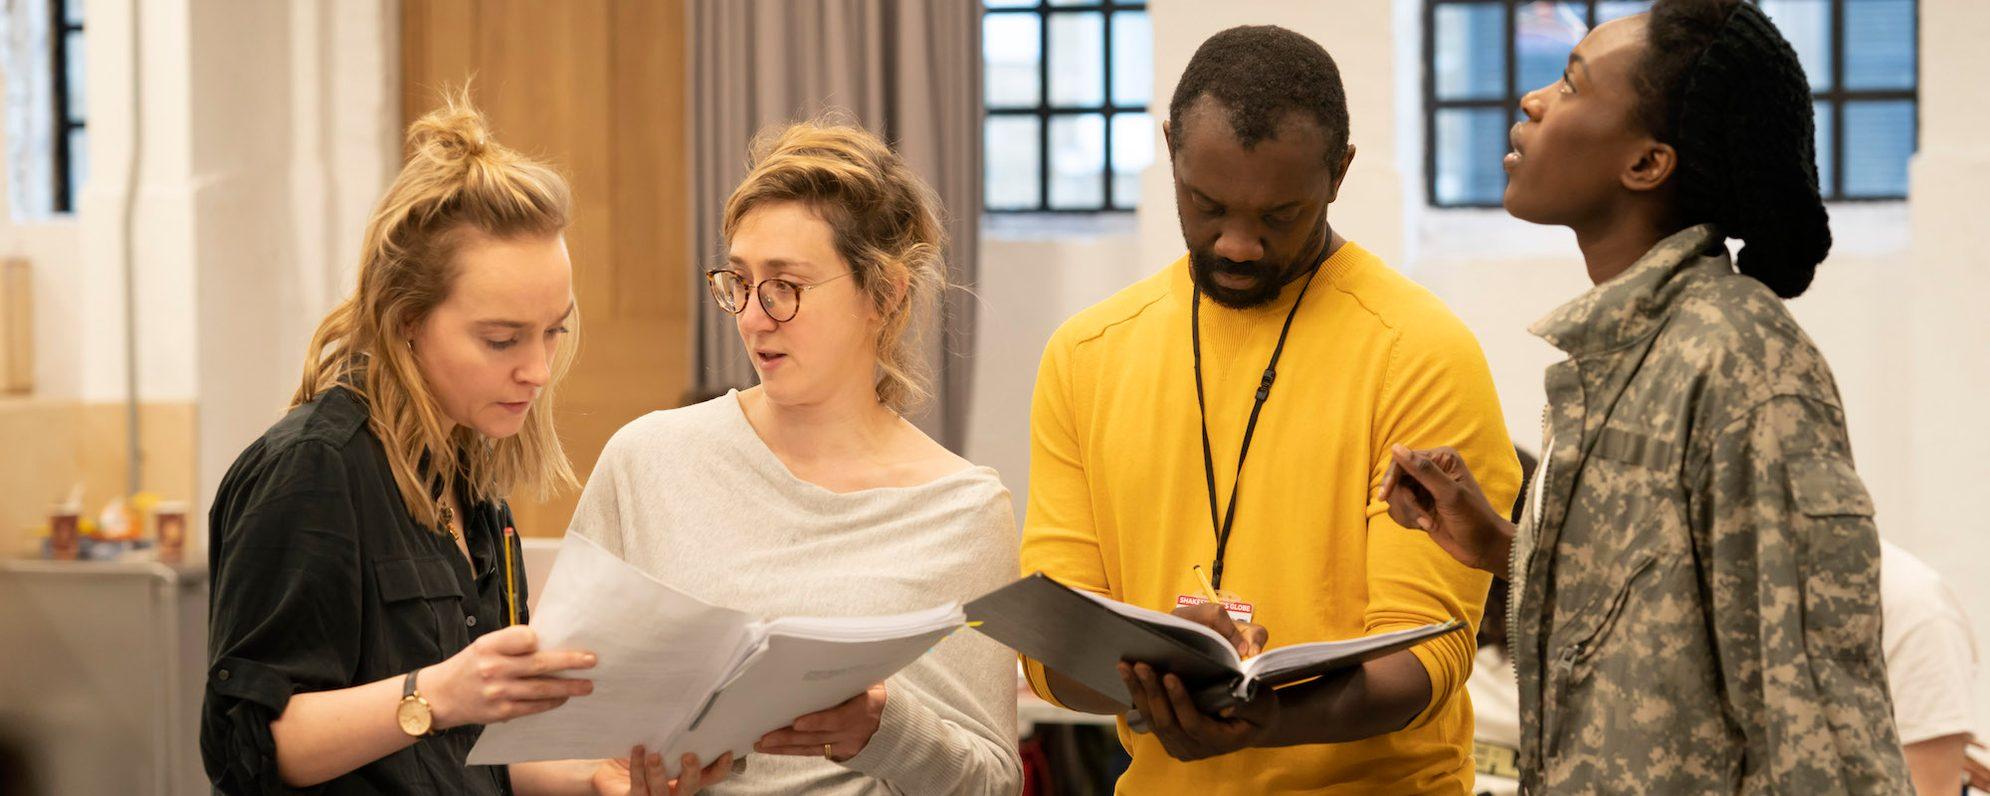 A group of four actors in rehearsal together look at their scripts